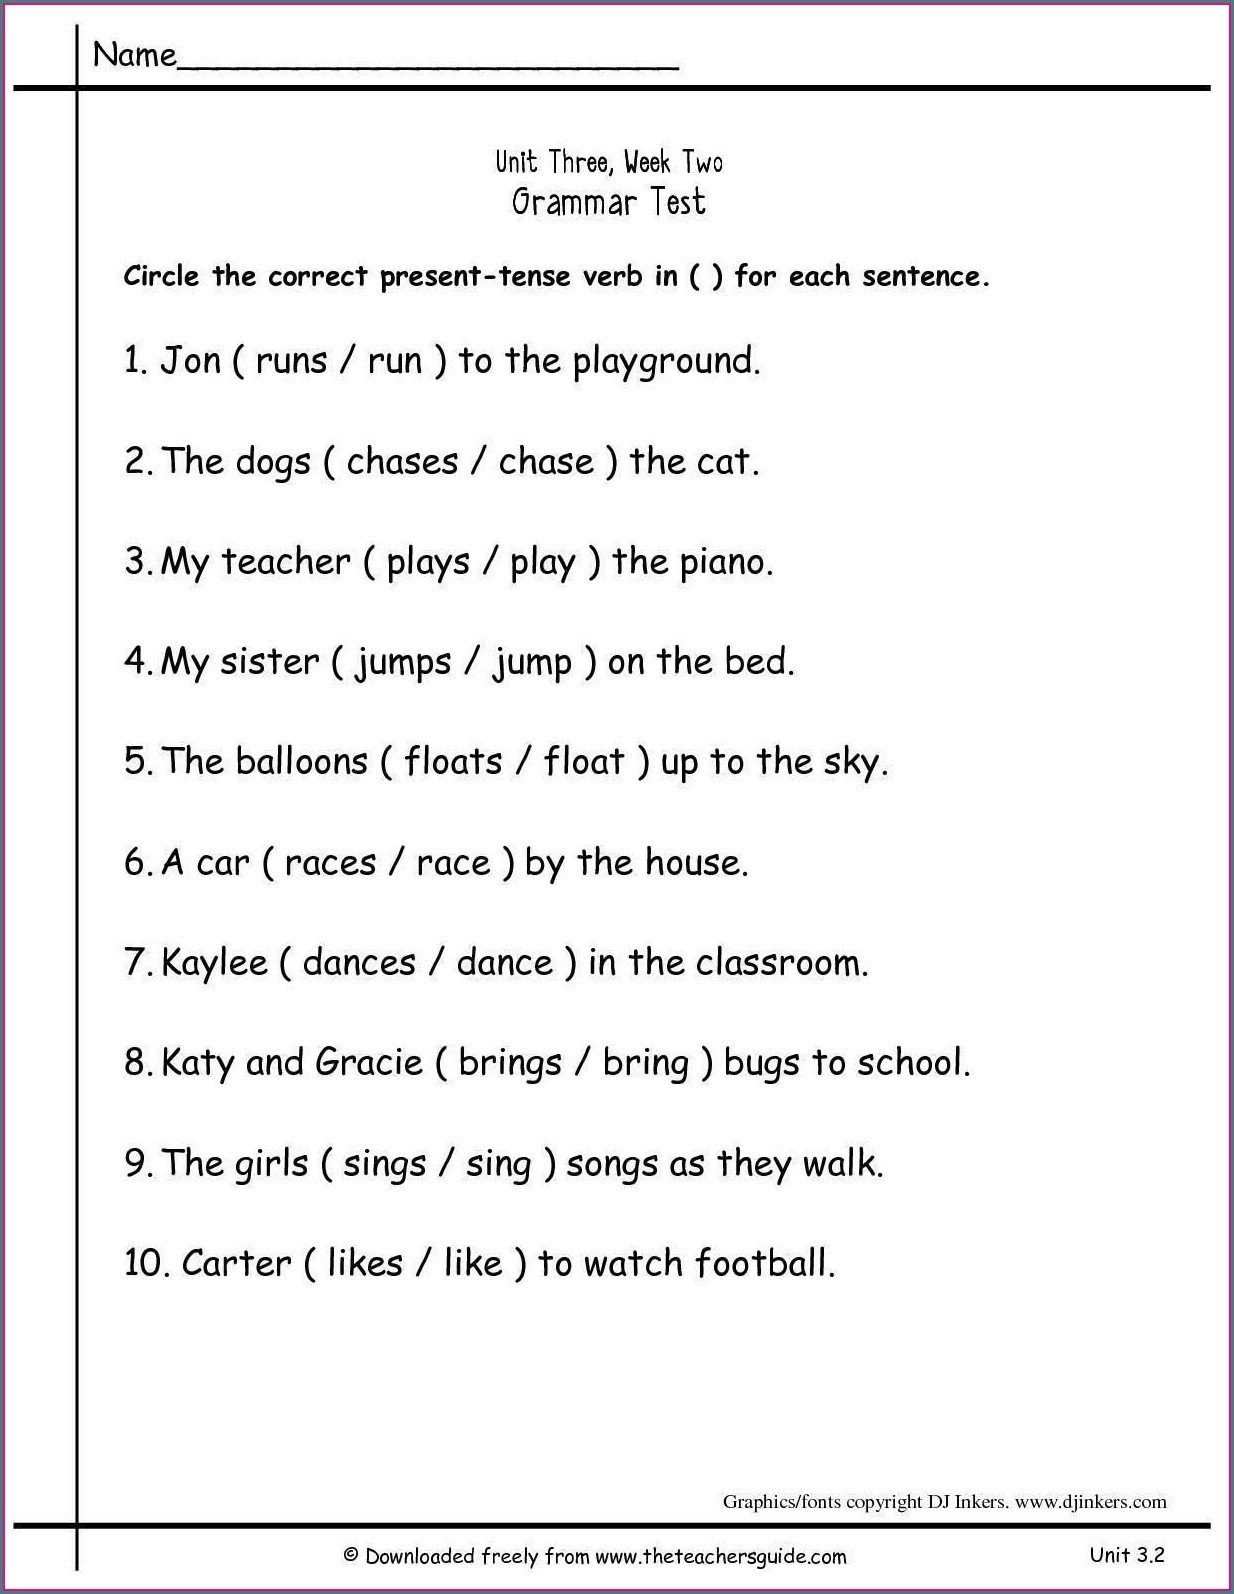 Second Grade Grammar Worksheets Math Worksheet 2nd Grade Grammarets Second Printable Free